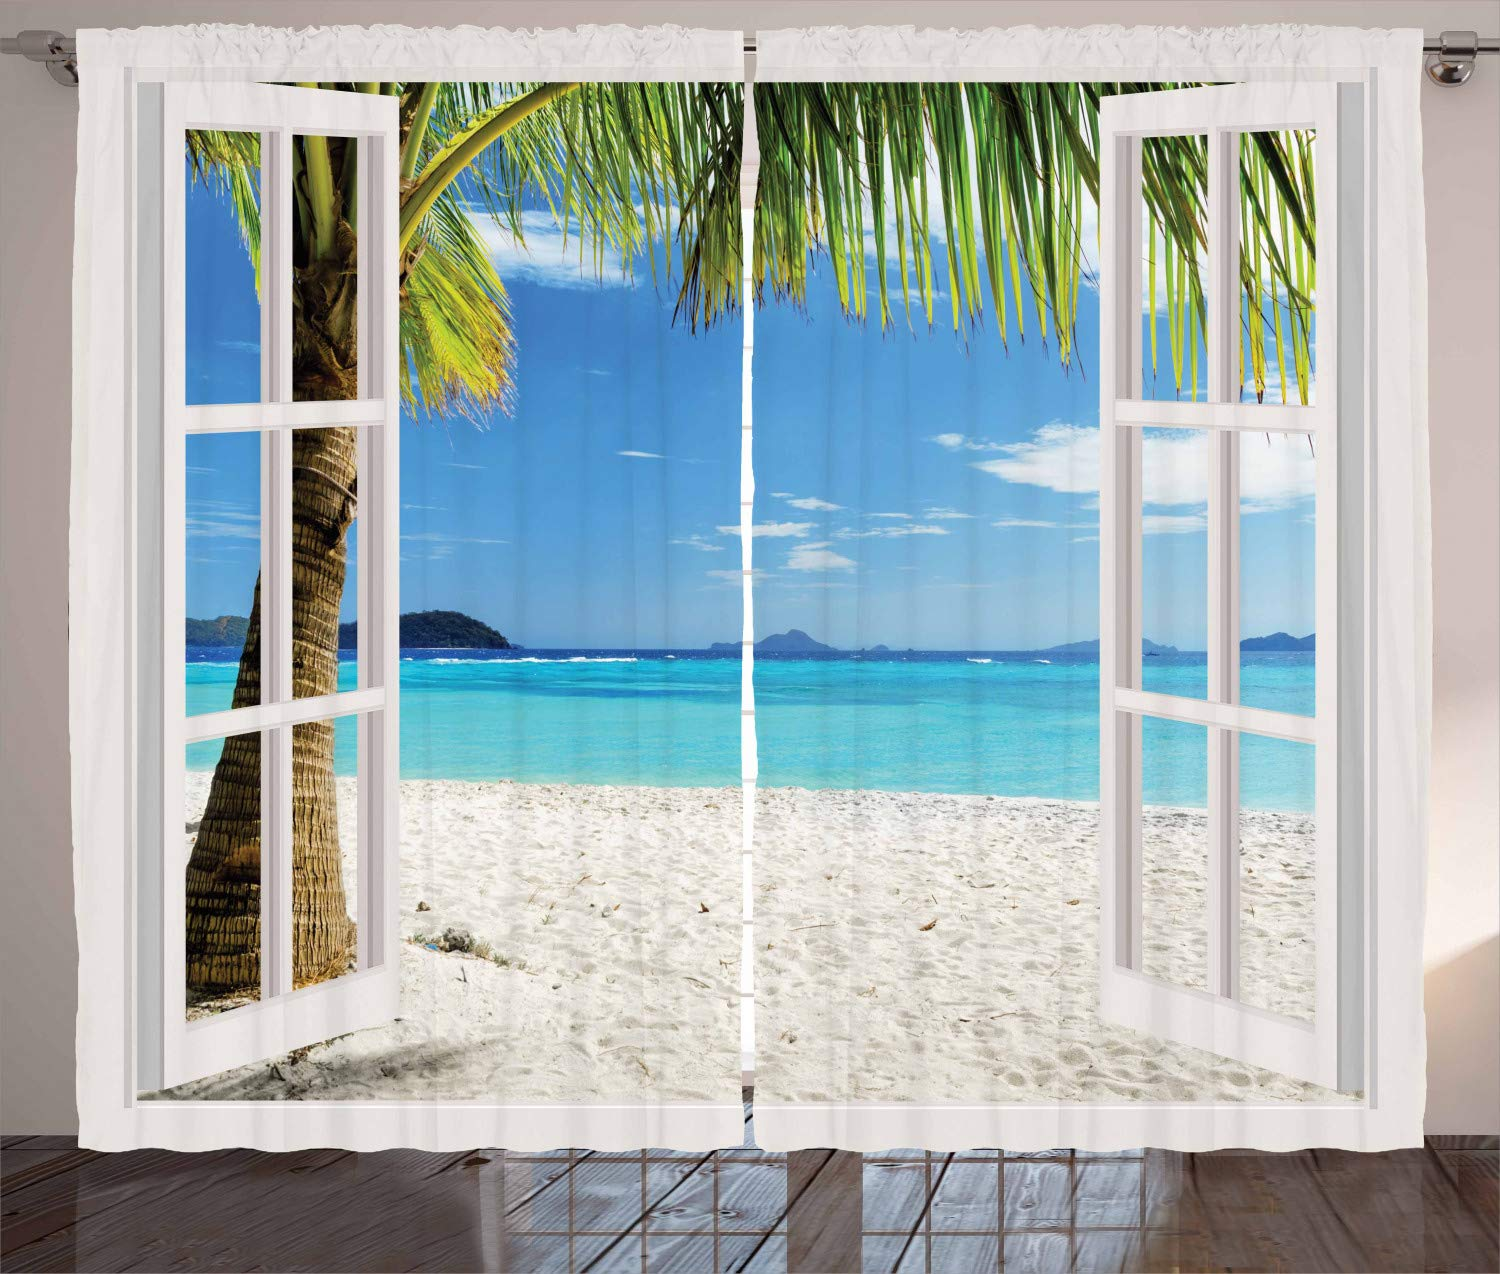 Ambesonne Turquoise Curtains Decor, Tropical Palm Trees on Island Ocean Beach Through White Wooden Windows, Living Room Bedroom Window Drapes 2 Panel Set, 108 W X 96 L Inches, Blue Green and White